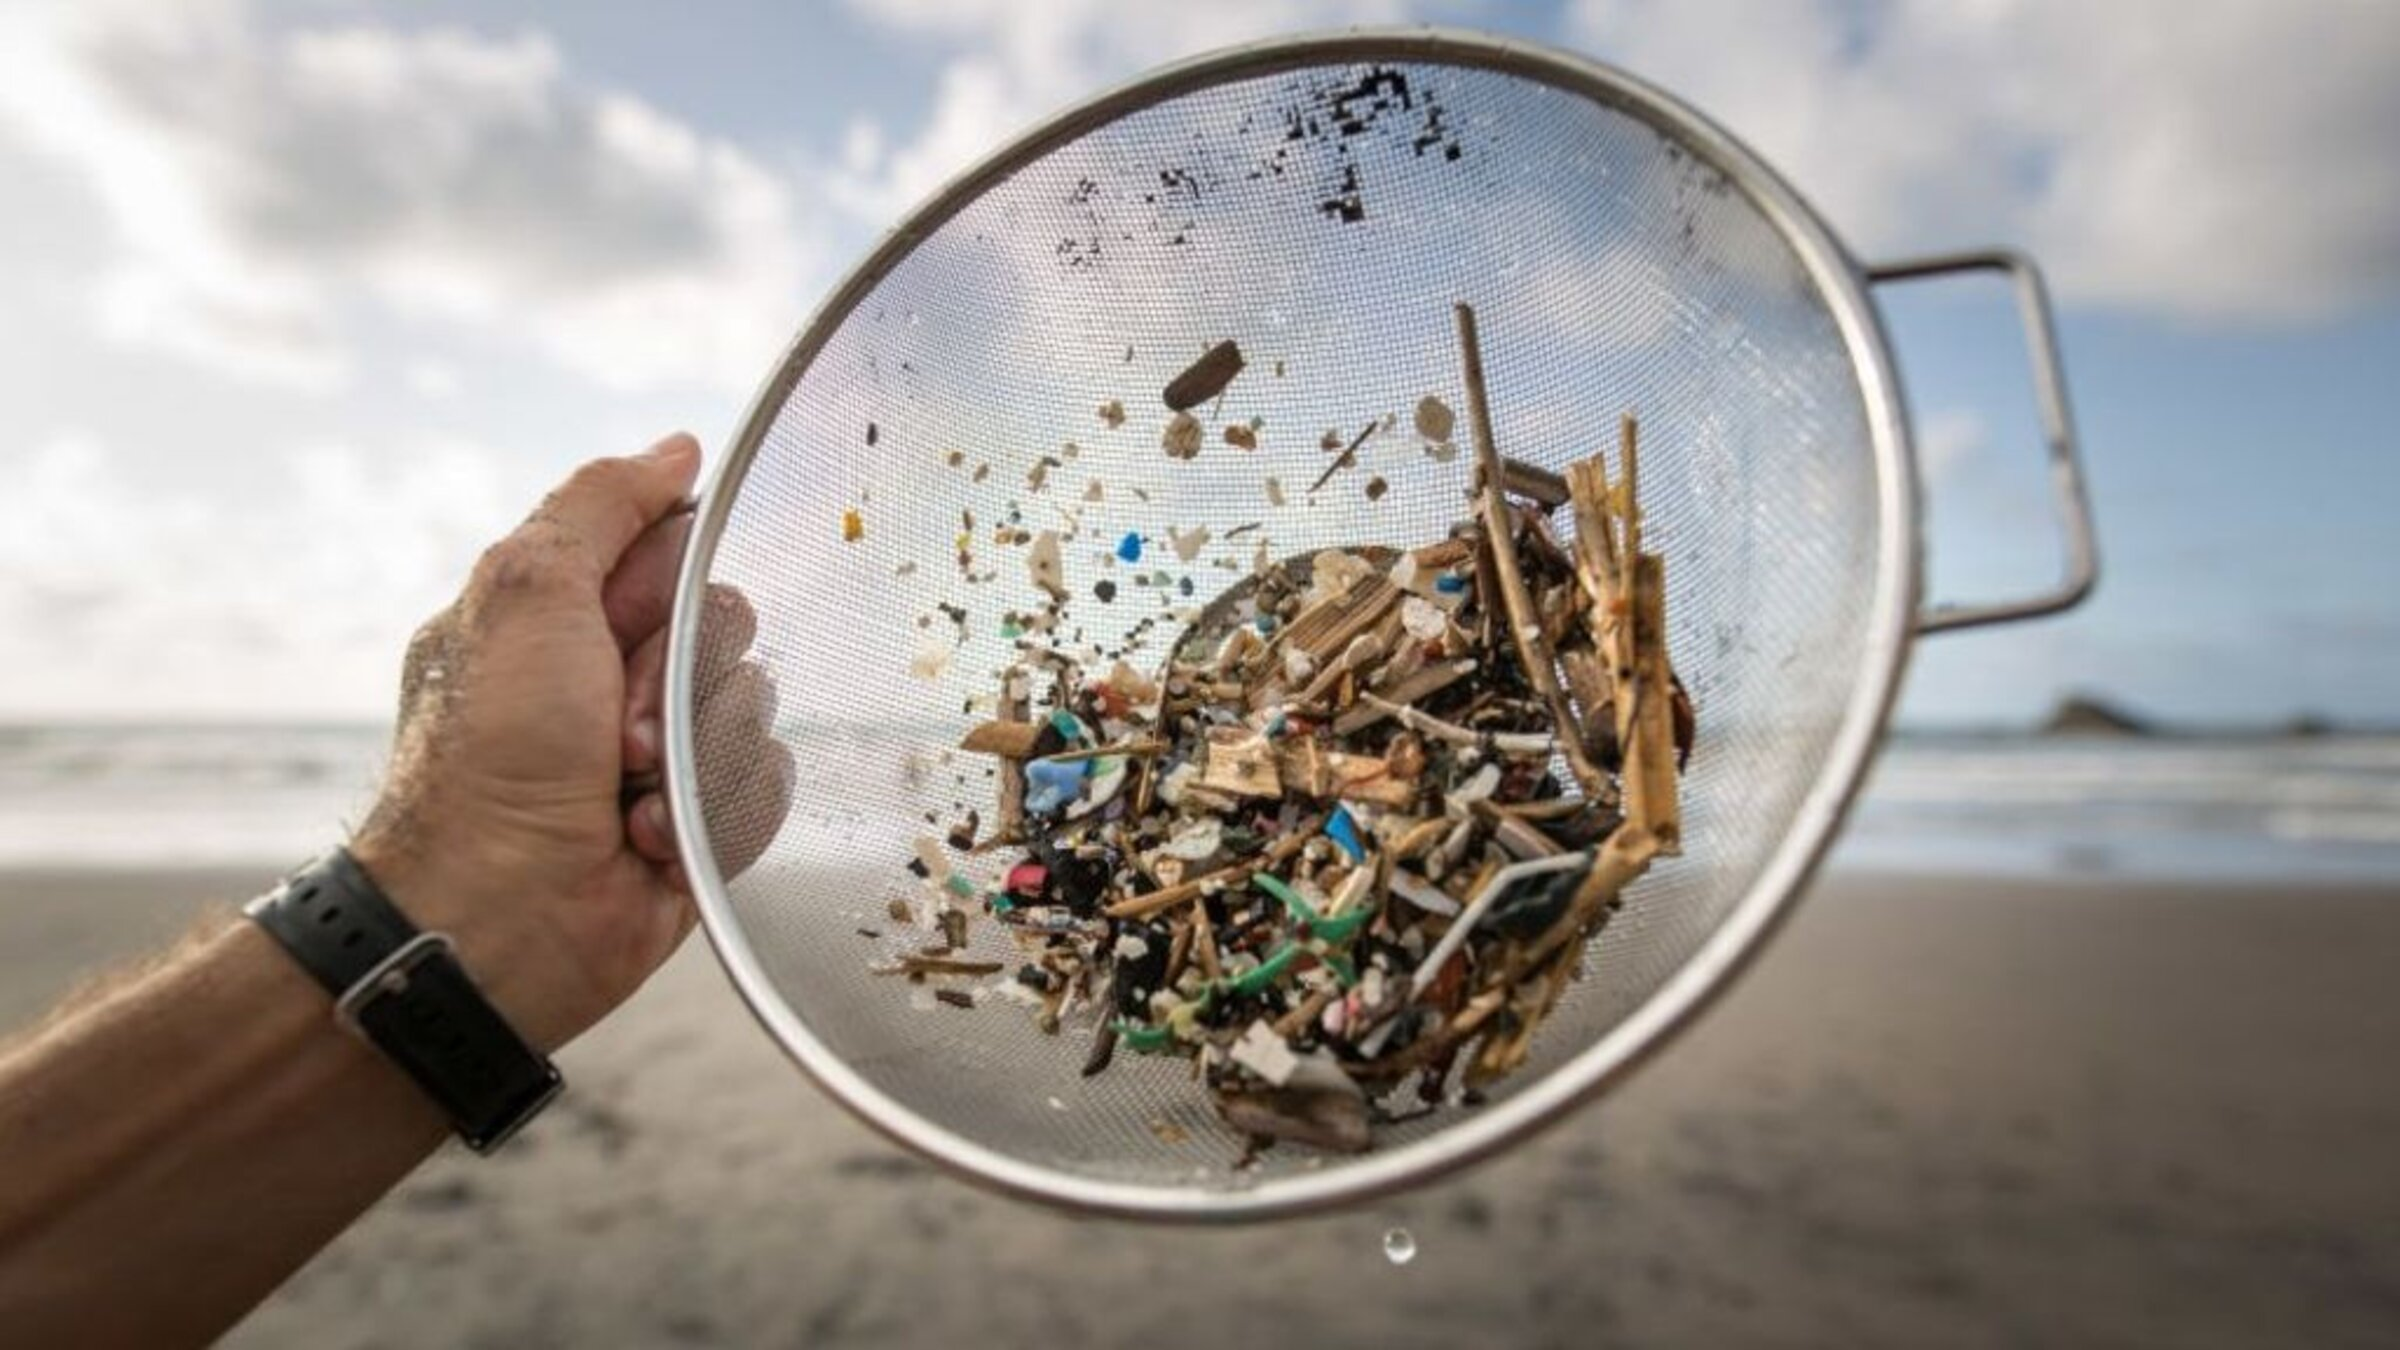 Effect Of Microplastics on Human Health